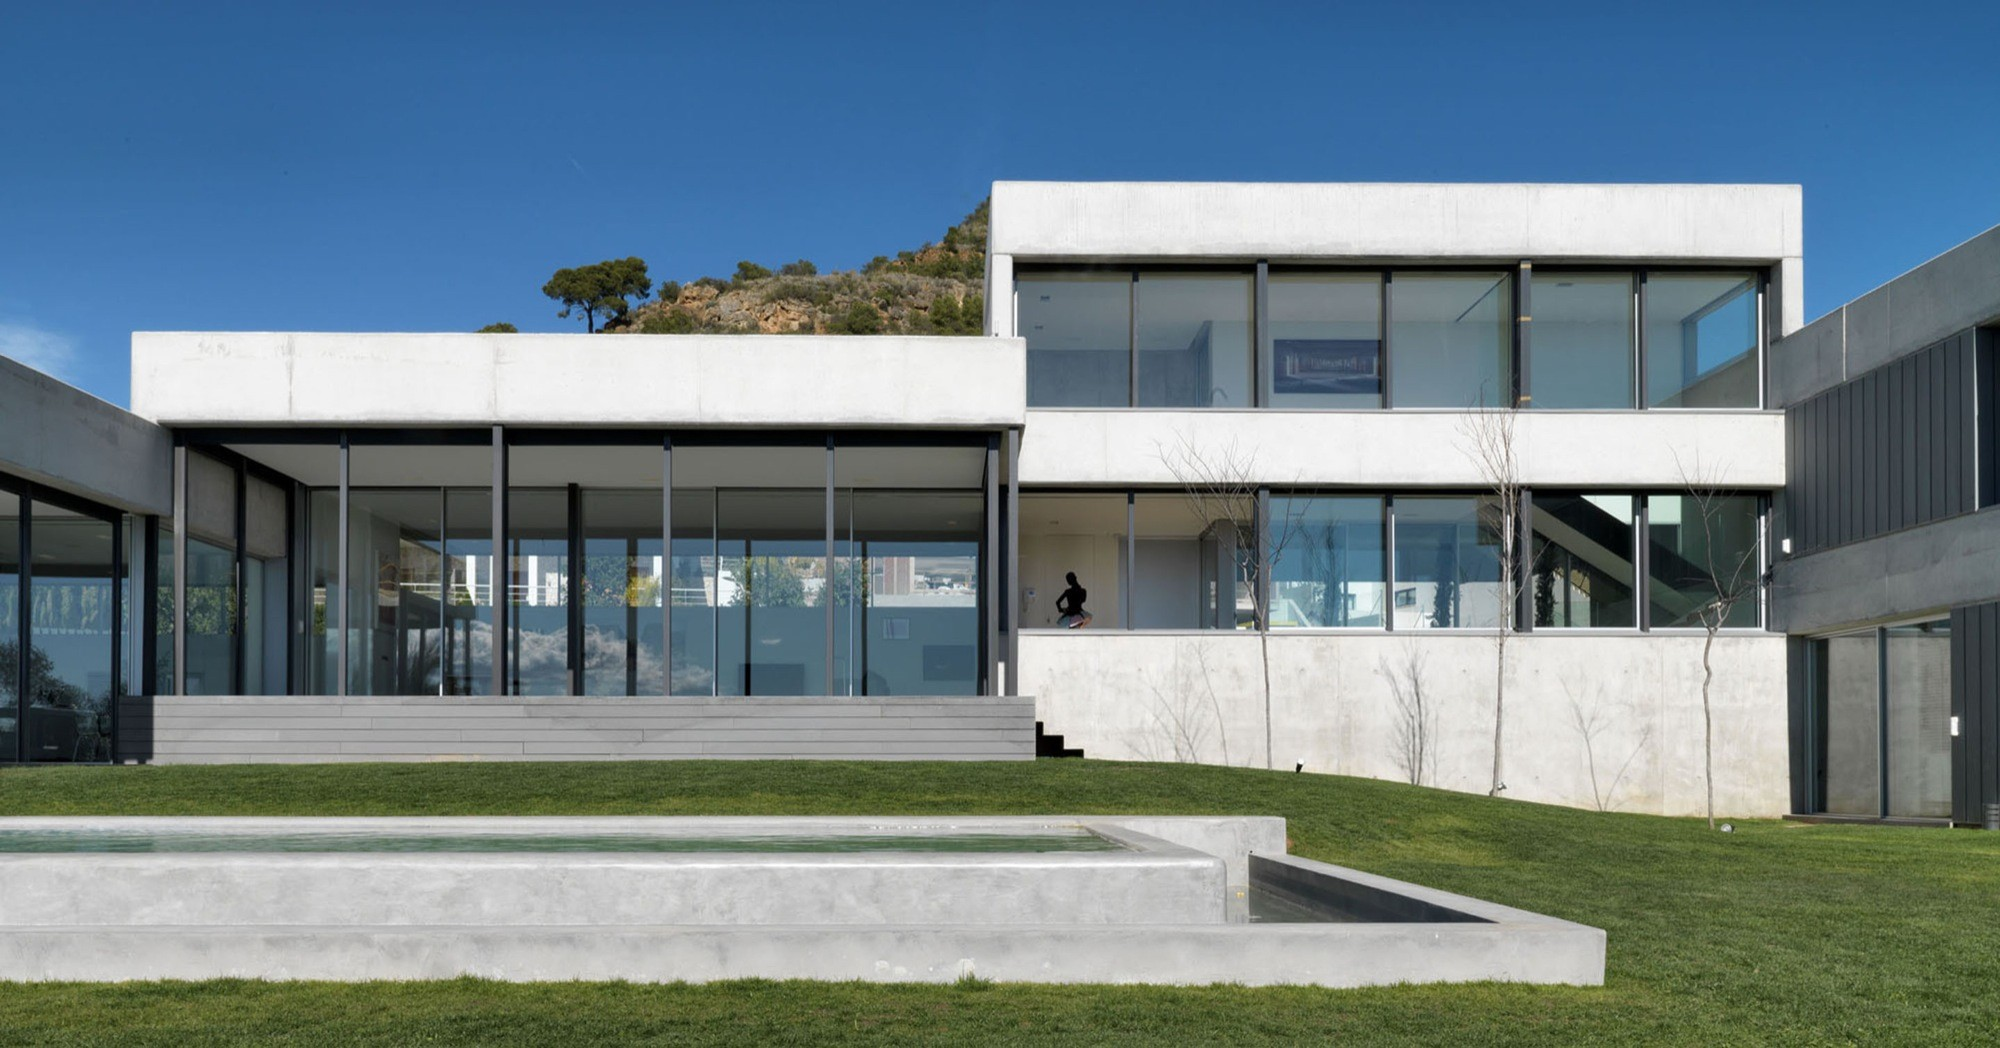 The Me Too House / LADAA